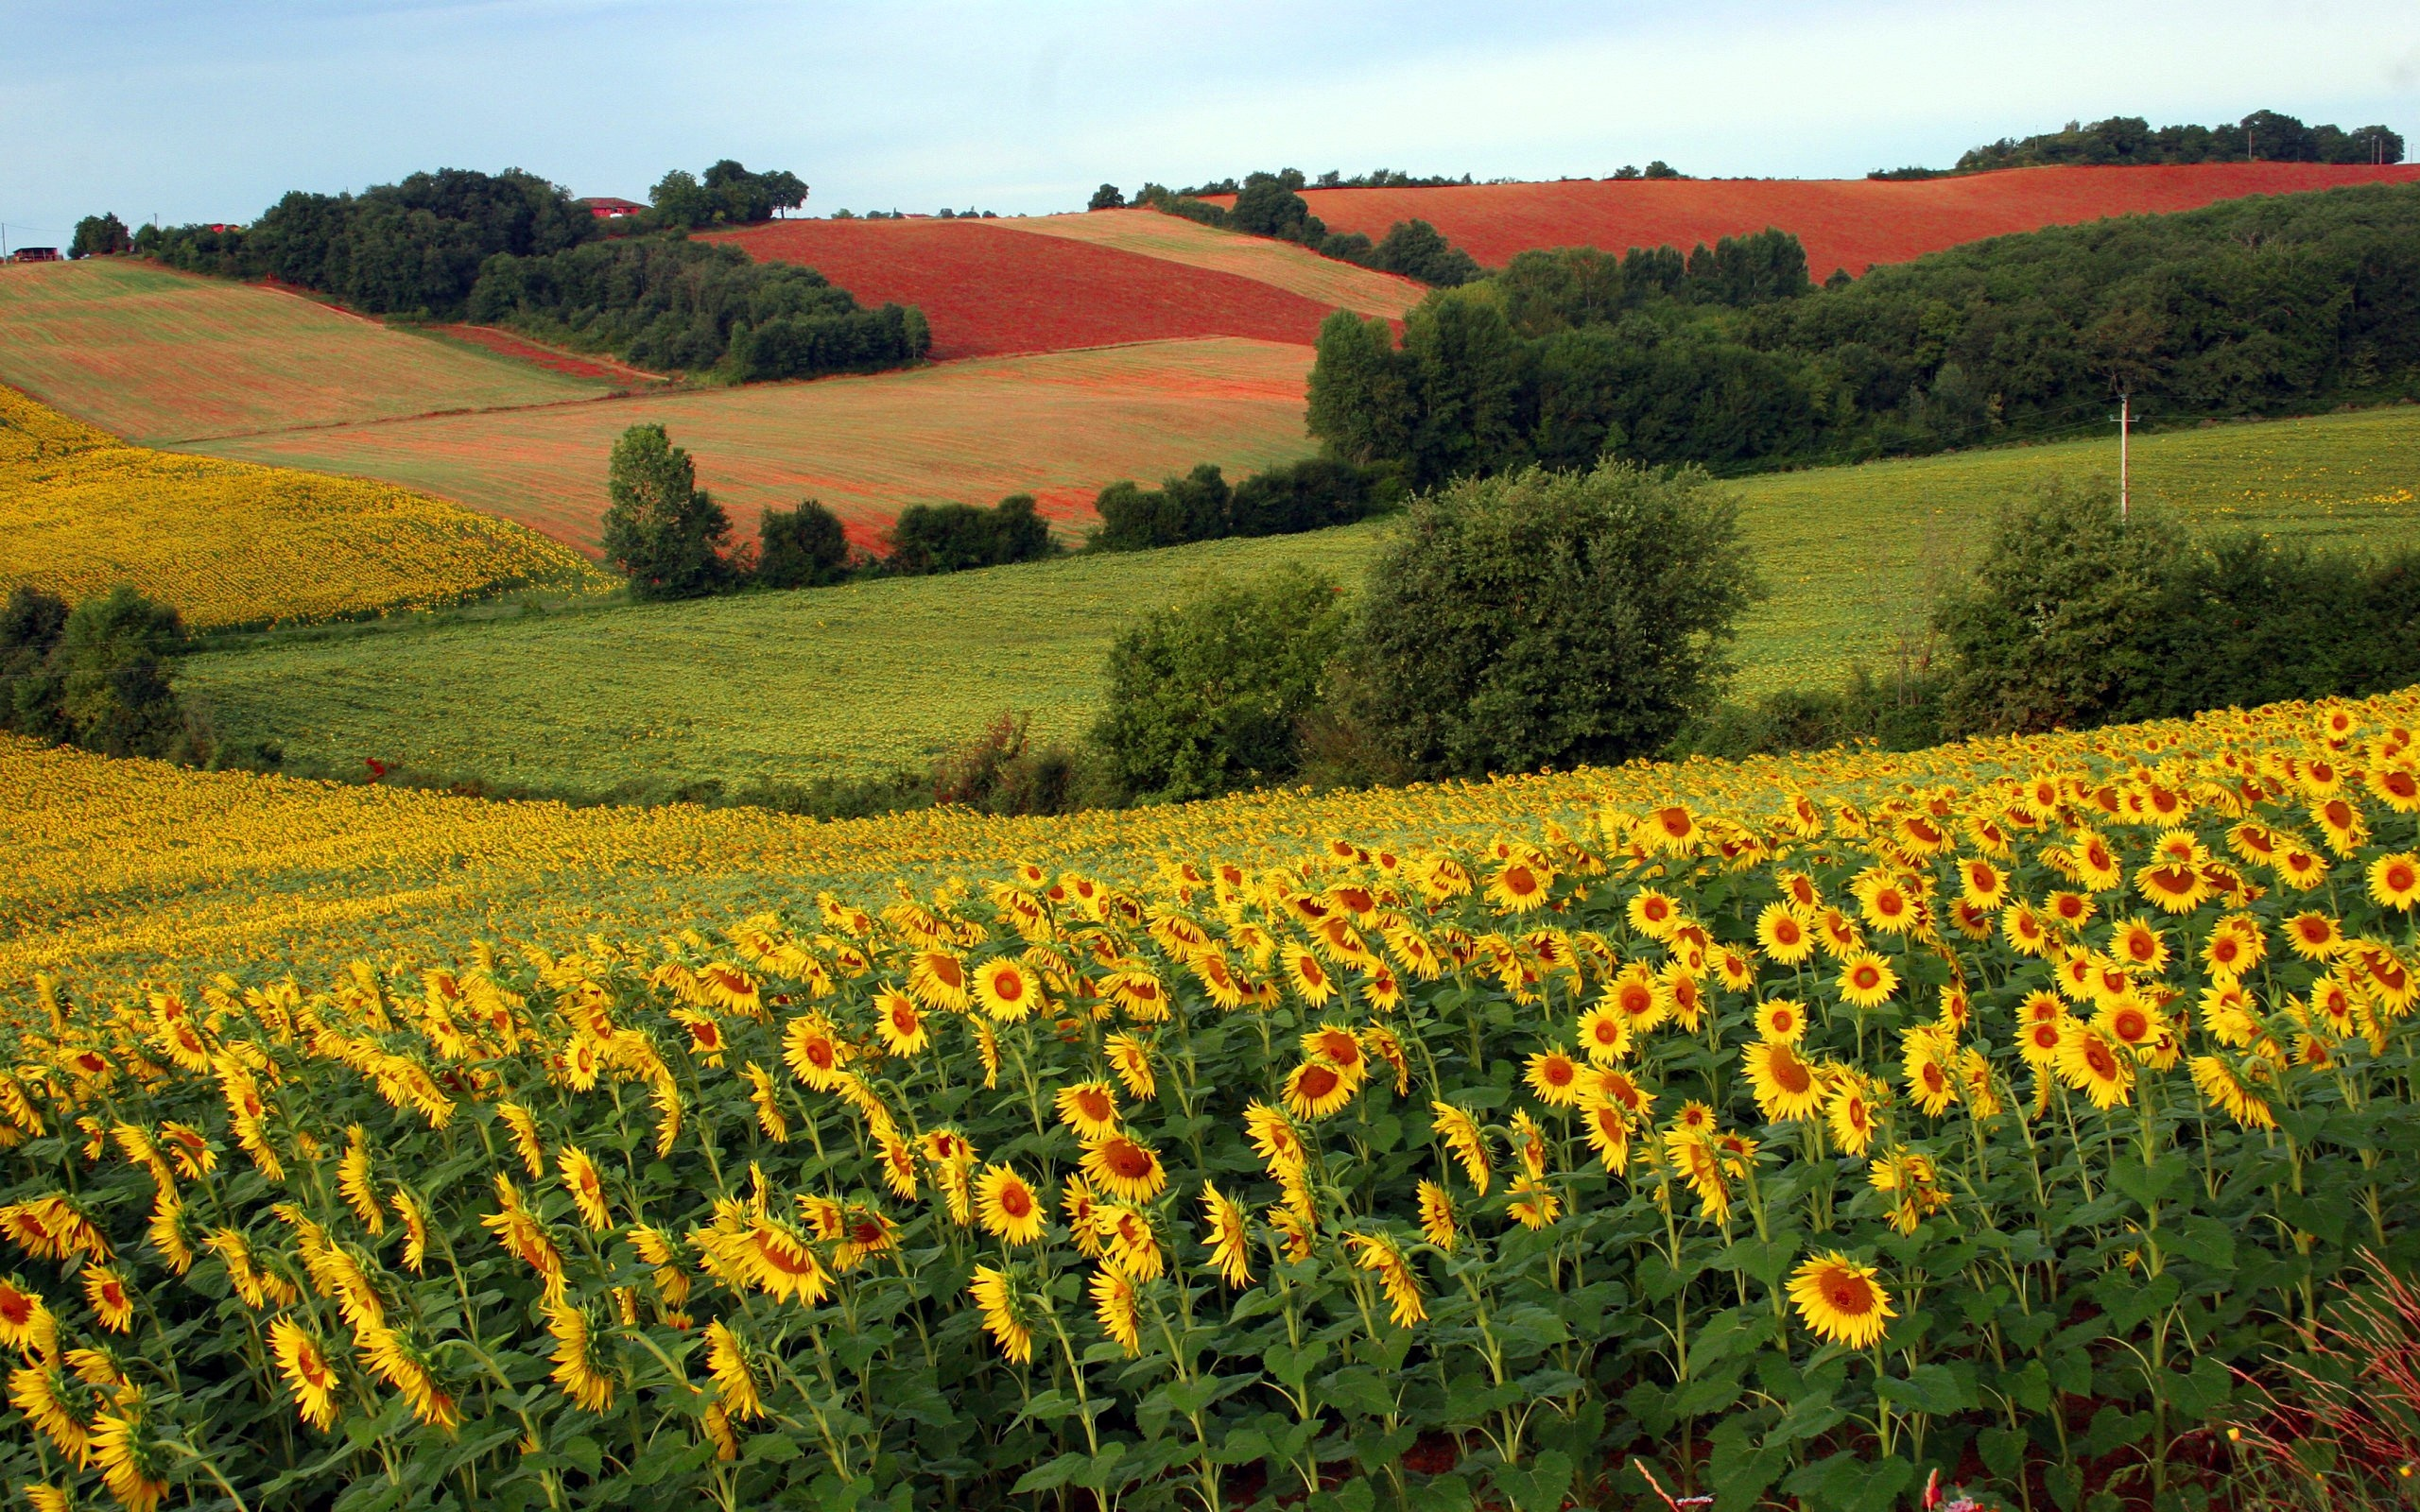 Sunflowers Wallpaper Field of Sunflowers wallpapers 2560x1600 2560x1600